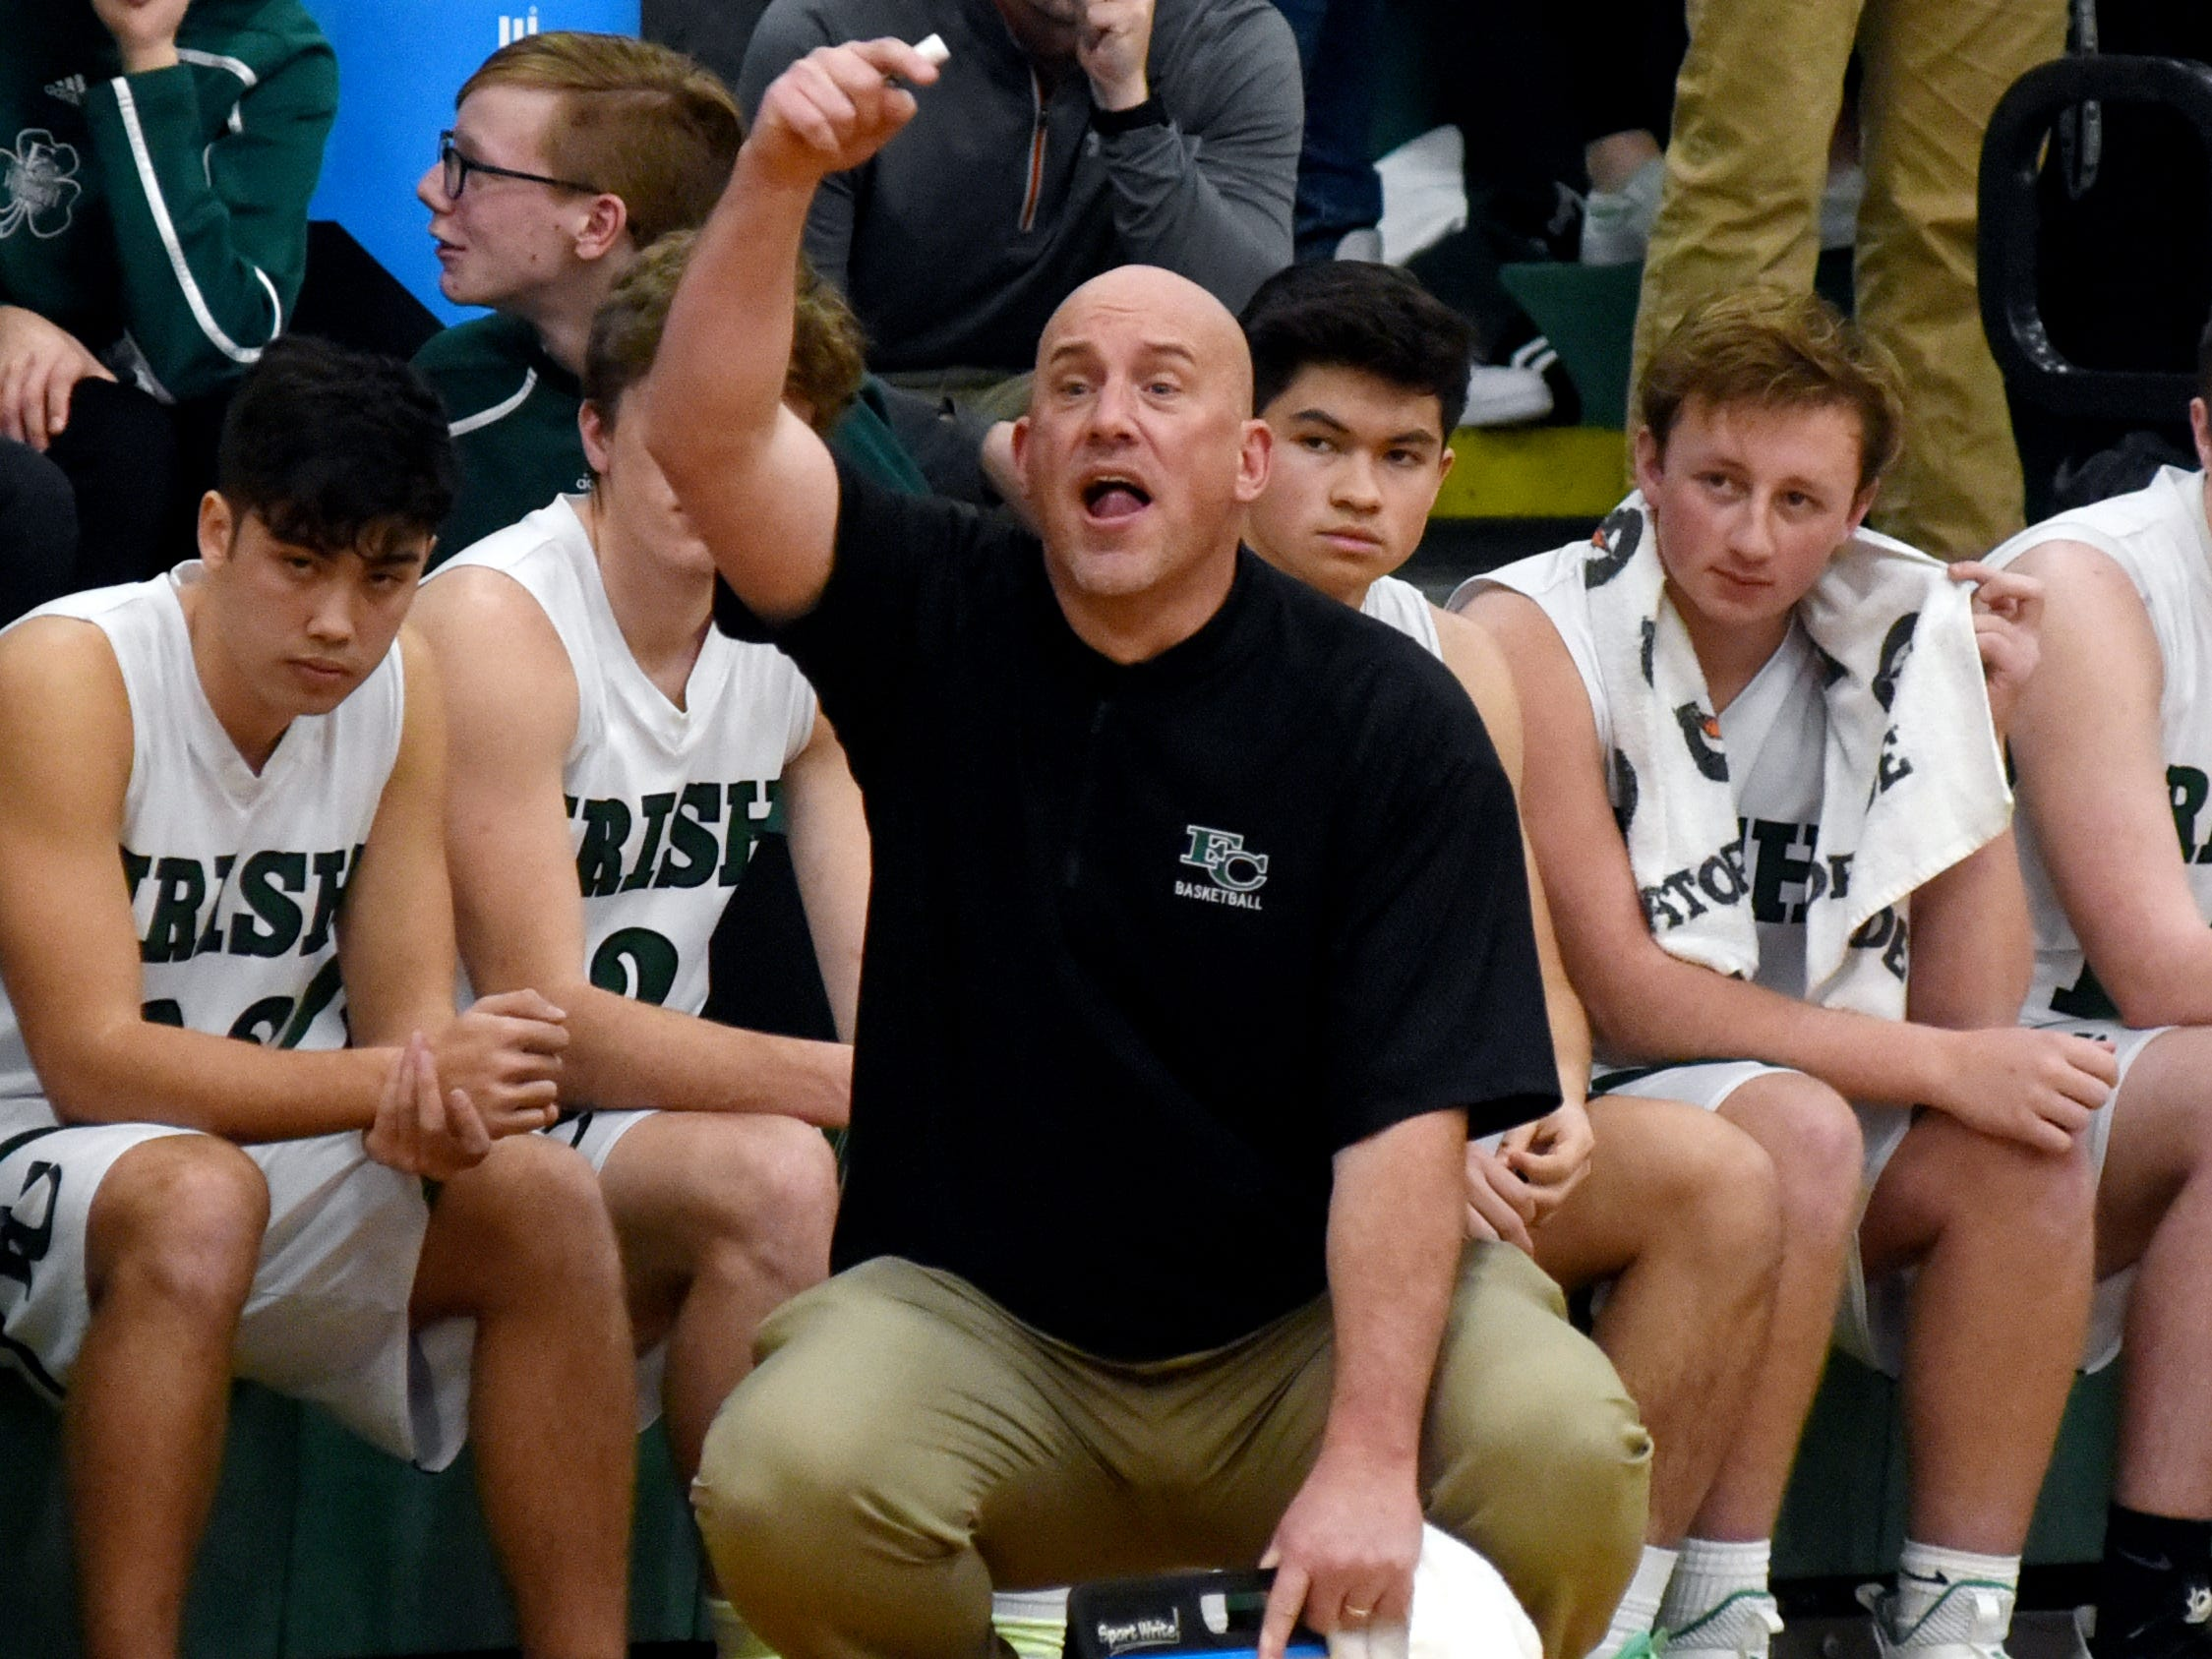 Fisher Catholic coach Shawn Brown gives signals to his team during the second half of a 55-47 loss to Rosecrans.